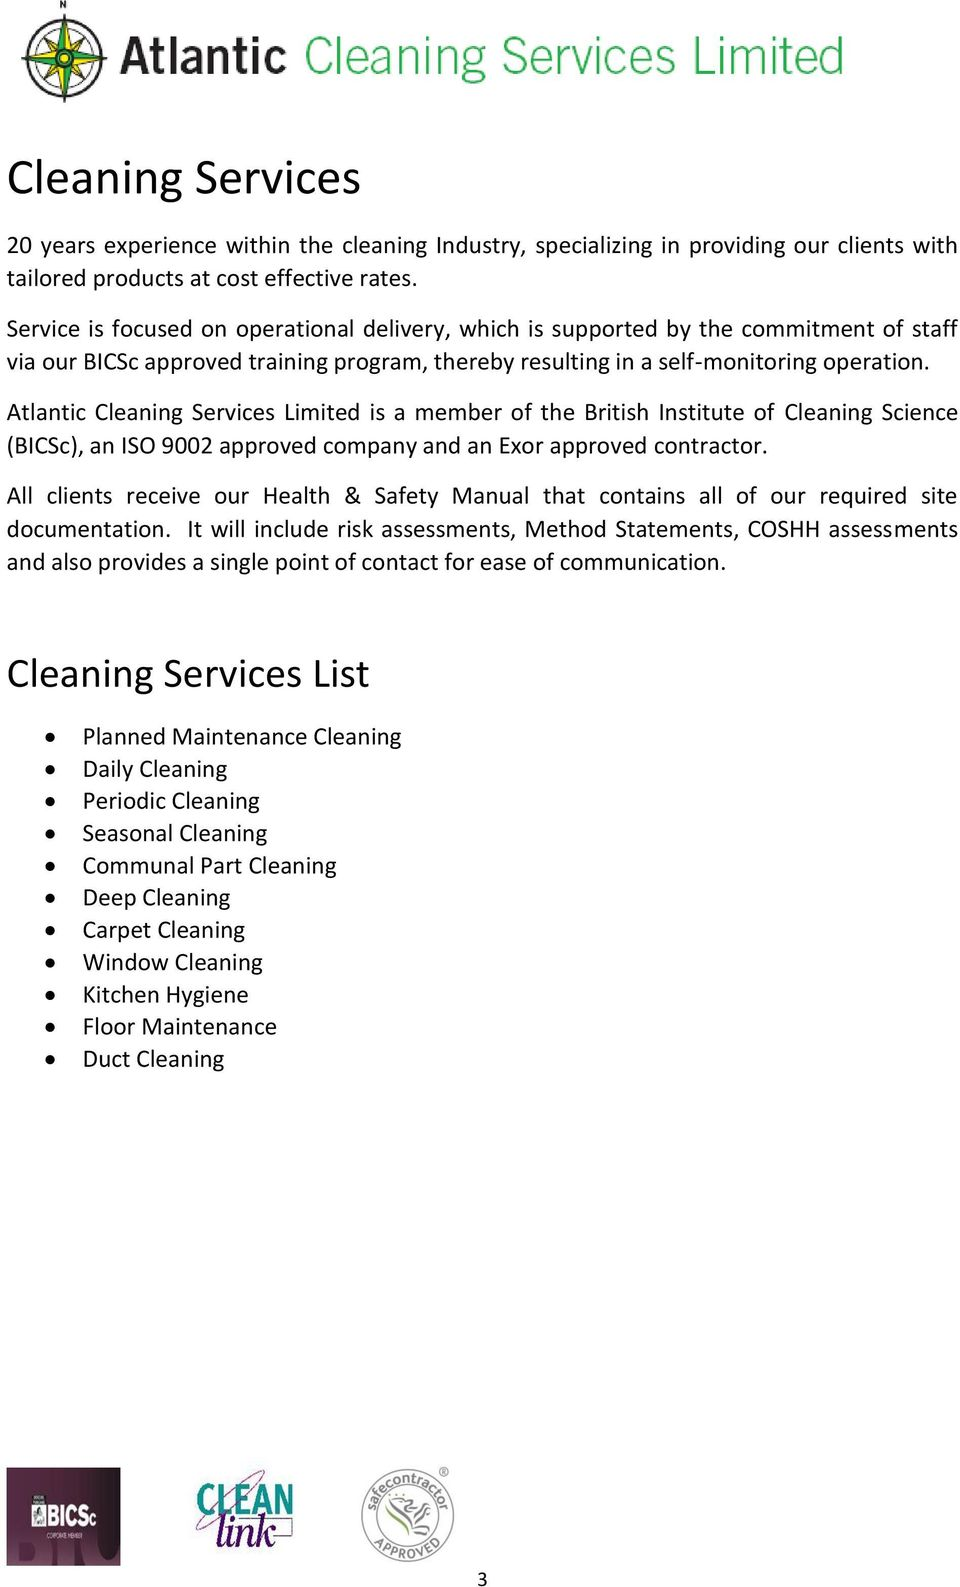 Atlantic Cleaning Services Limited is a member of the British Institute of Cleaning Science (BICSc), an ISO 9002 approved company and an Exor approved contractor.